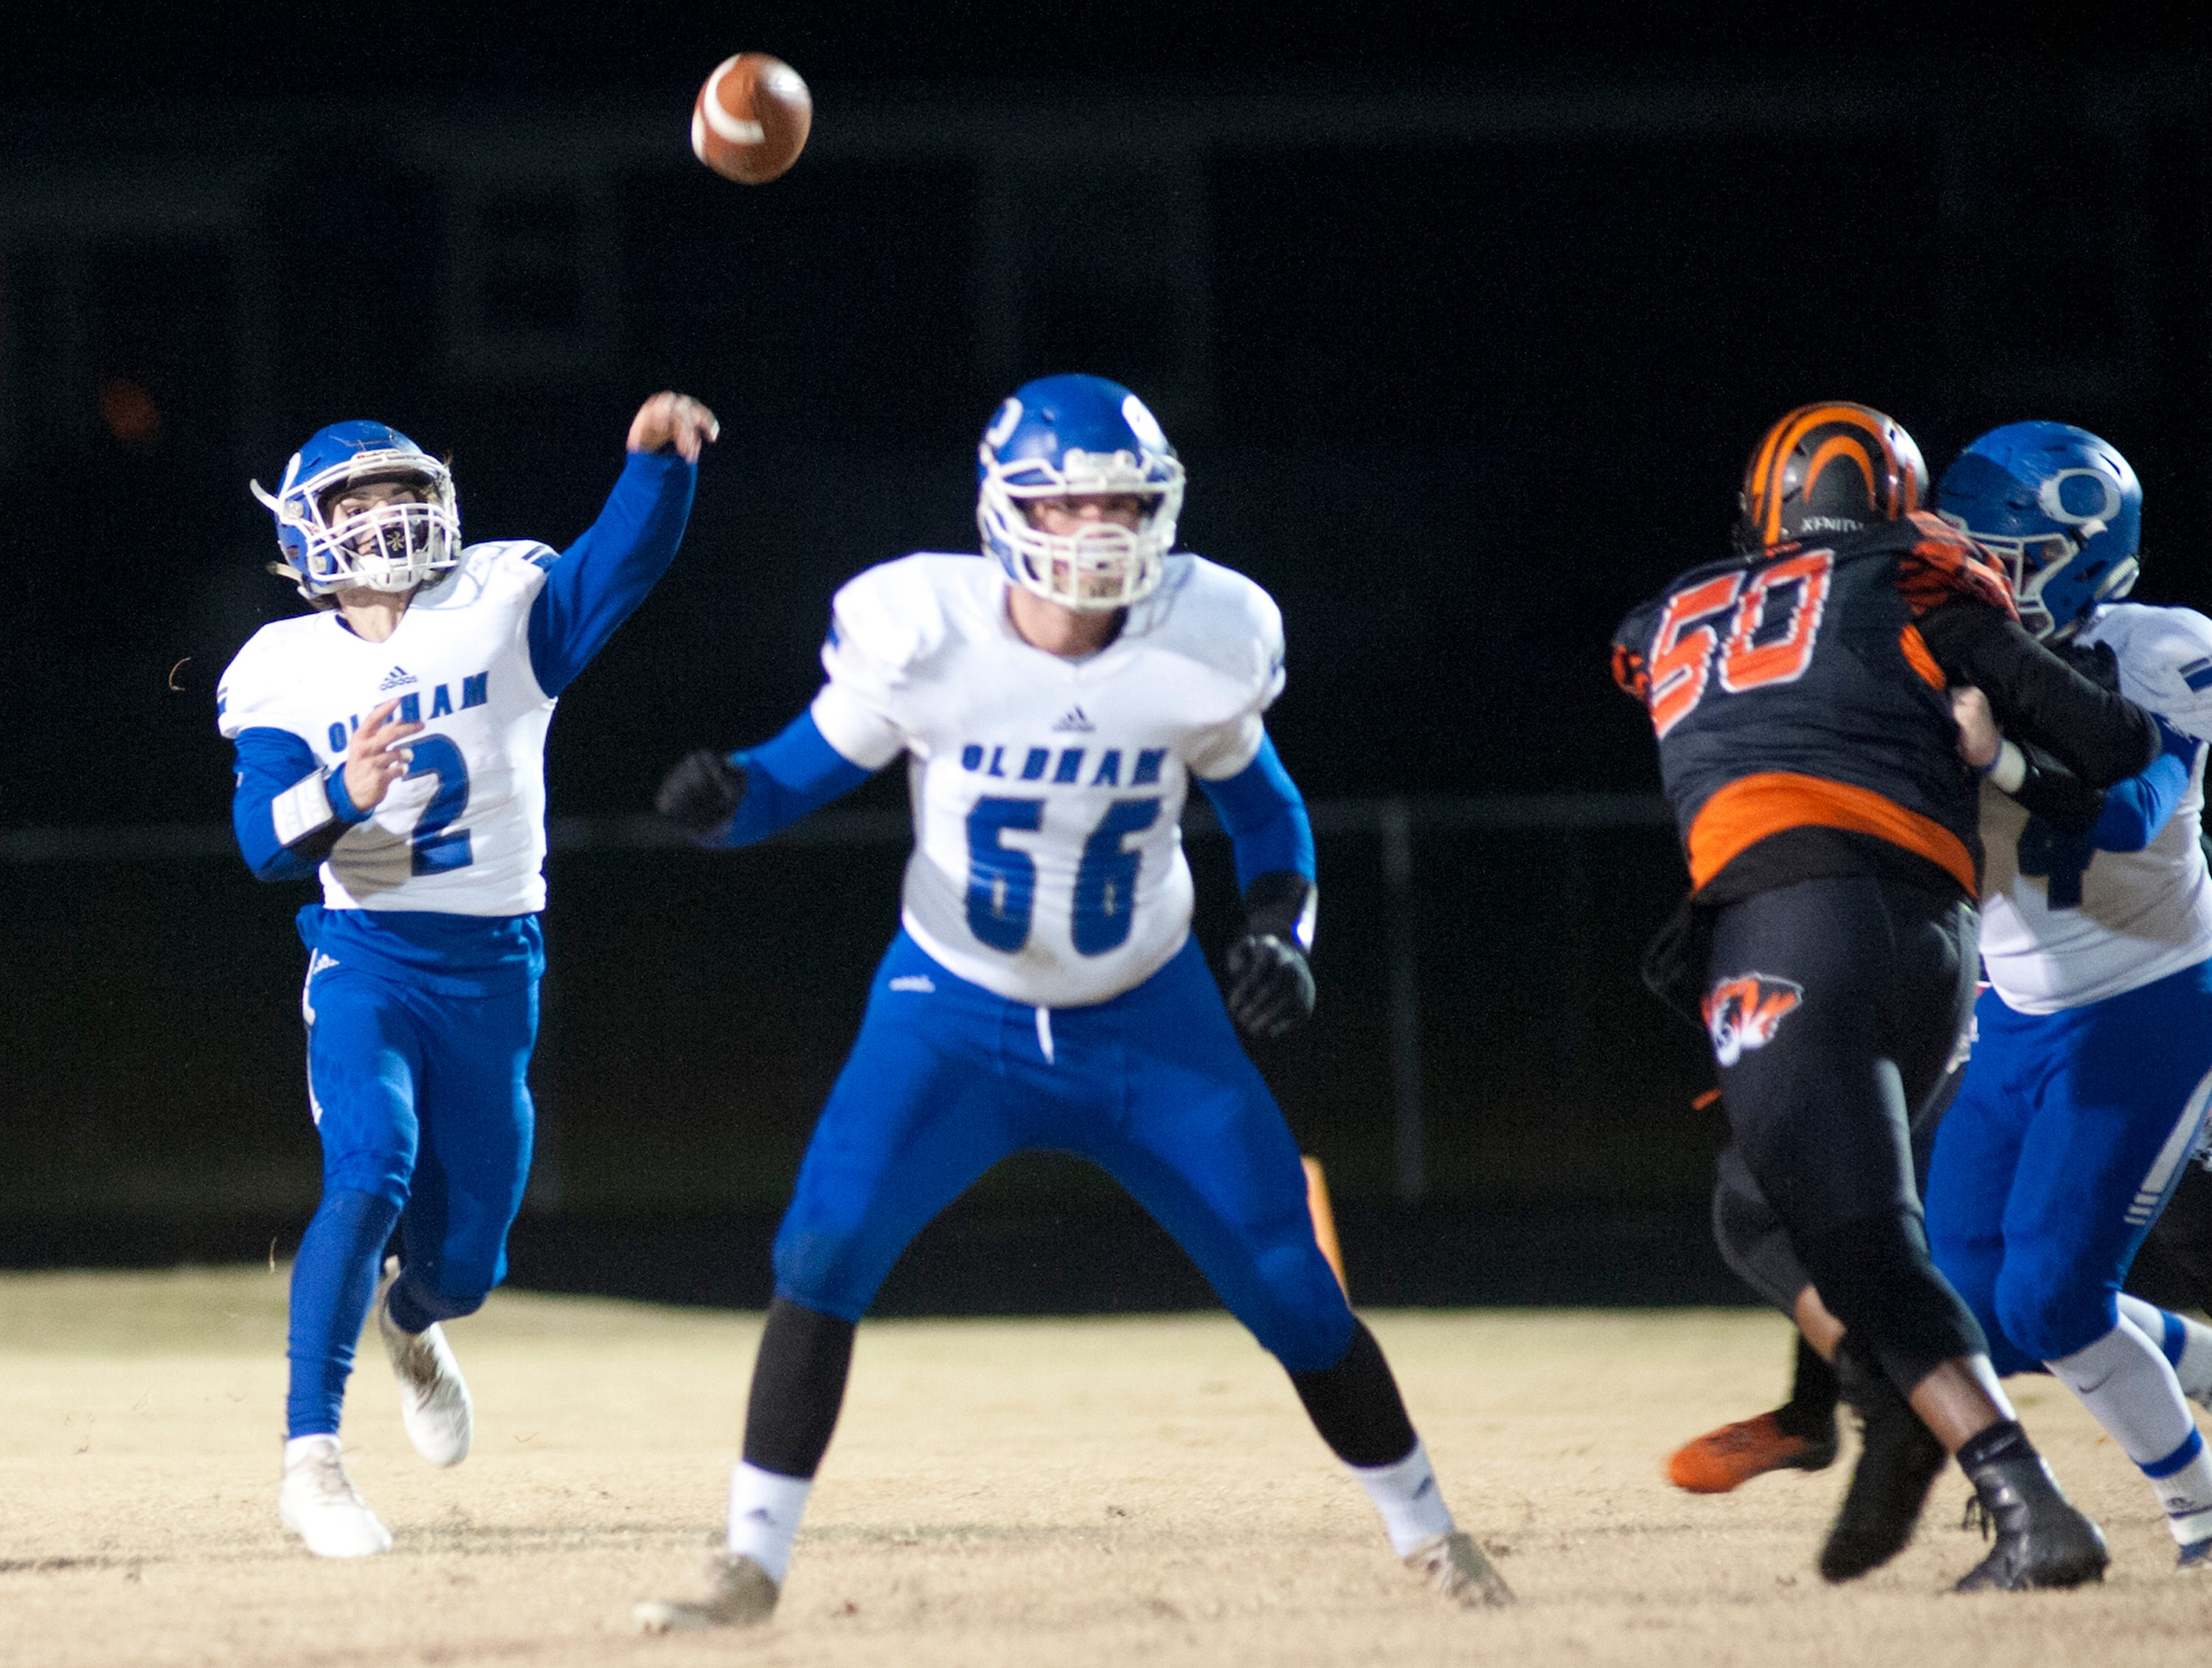 Oldham County quarterback Parker Caudill gets a pass off during the game. Nov. 9, 2018